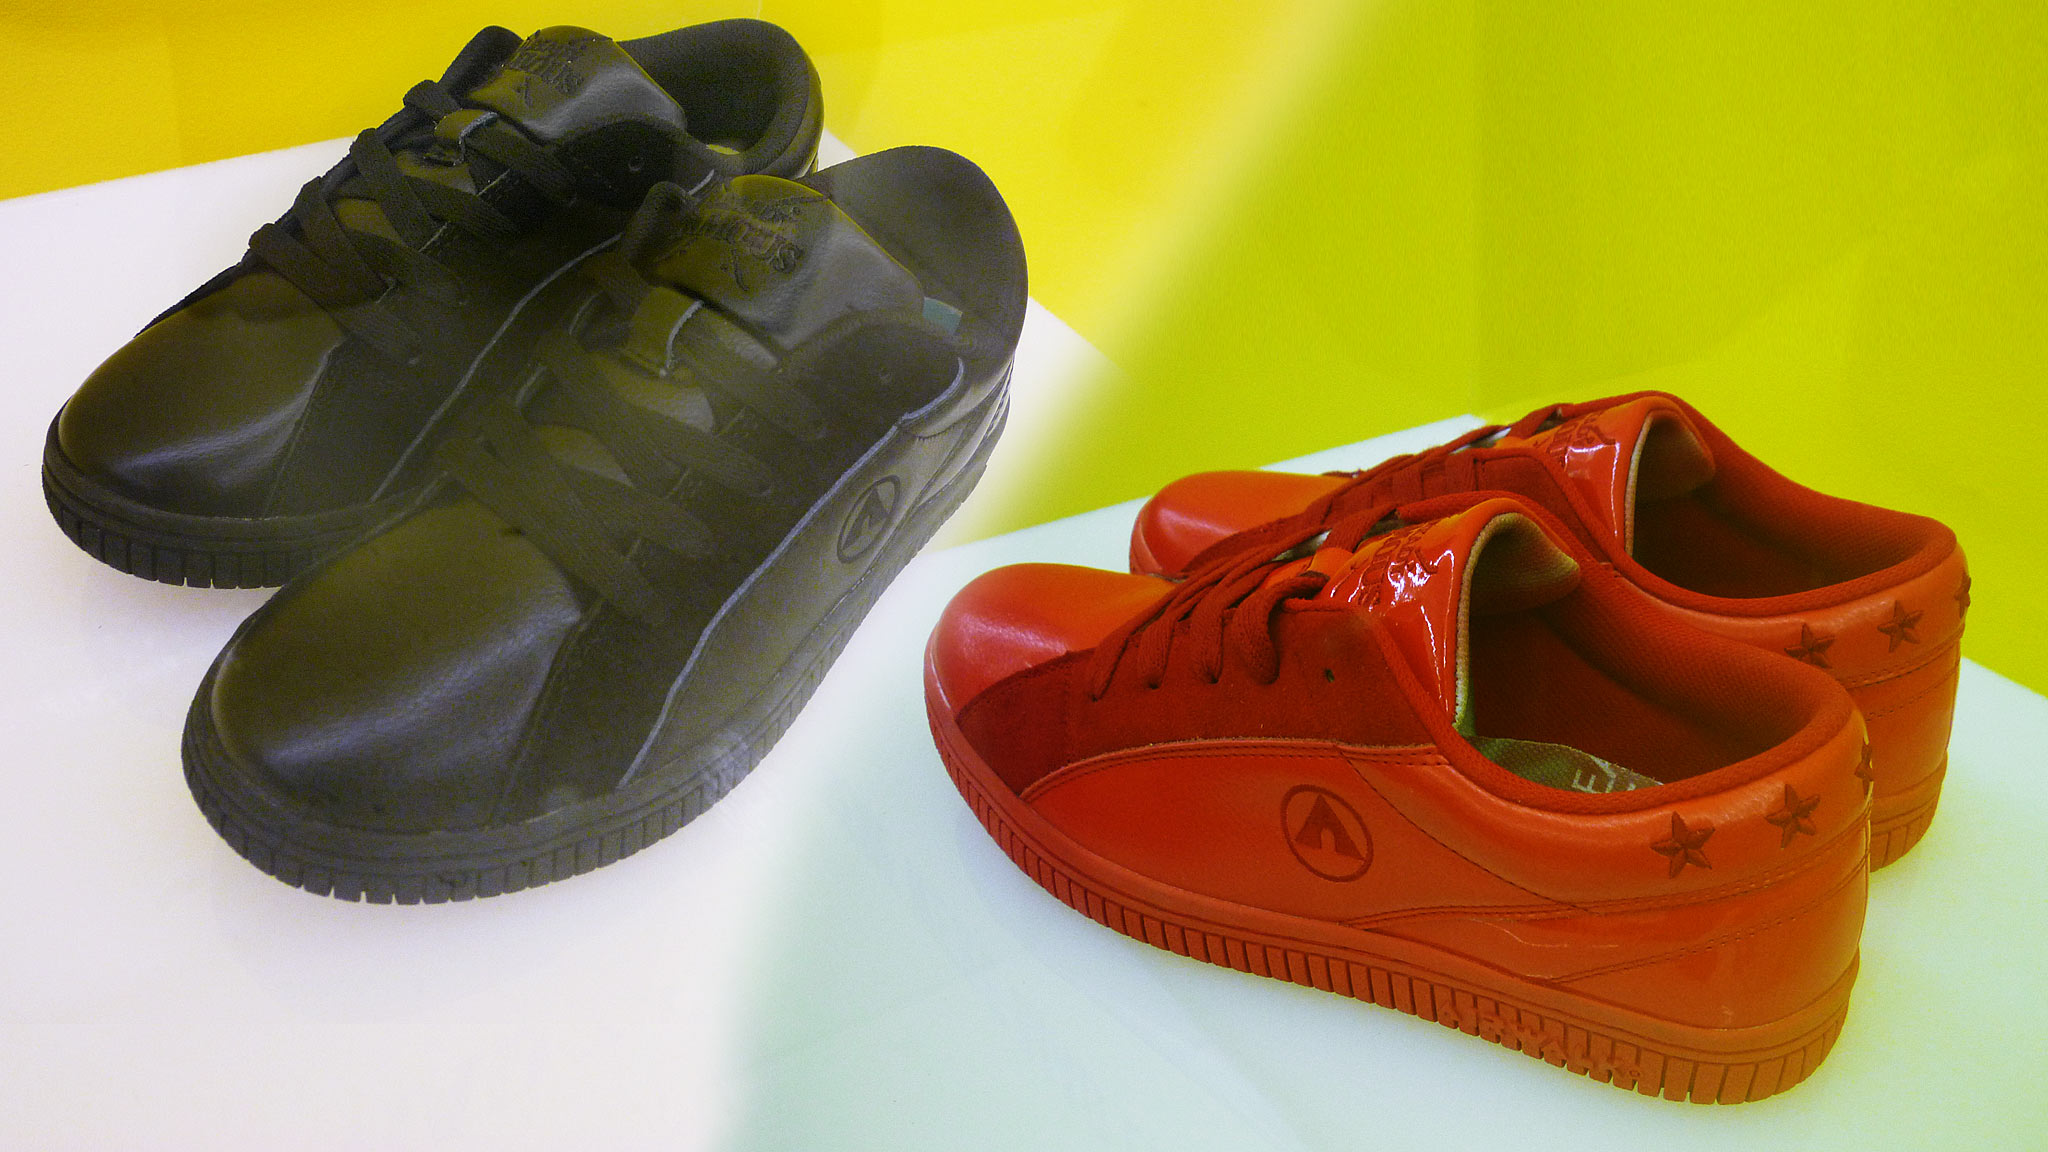 The Red and the Black: Airwalk's limited Already Famous edition One sneaker.